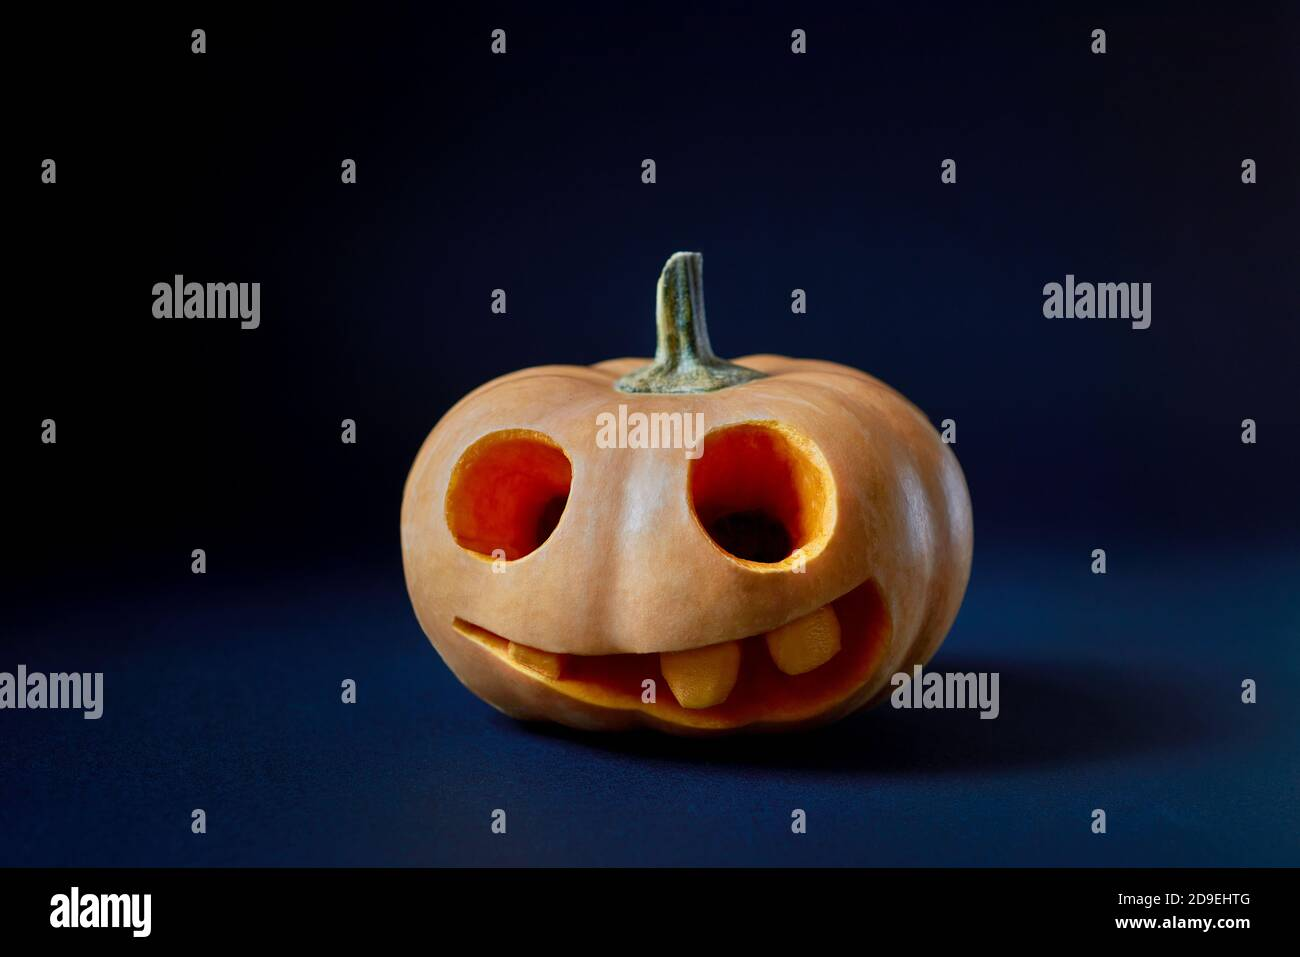 Dark Aesthetic High Resolution Stock Photography And Images Alamy